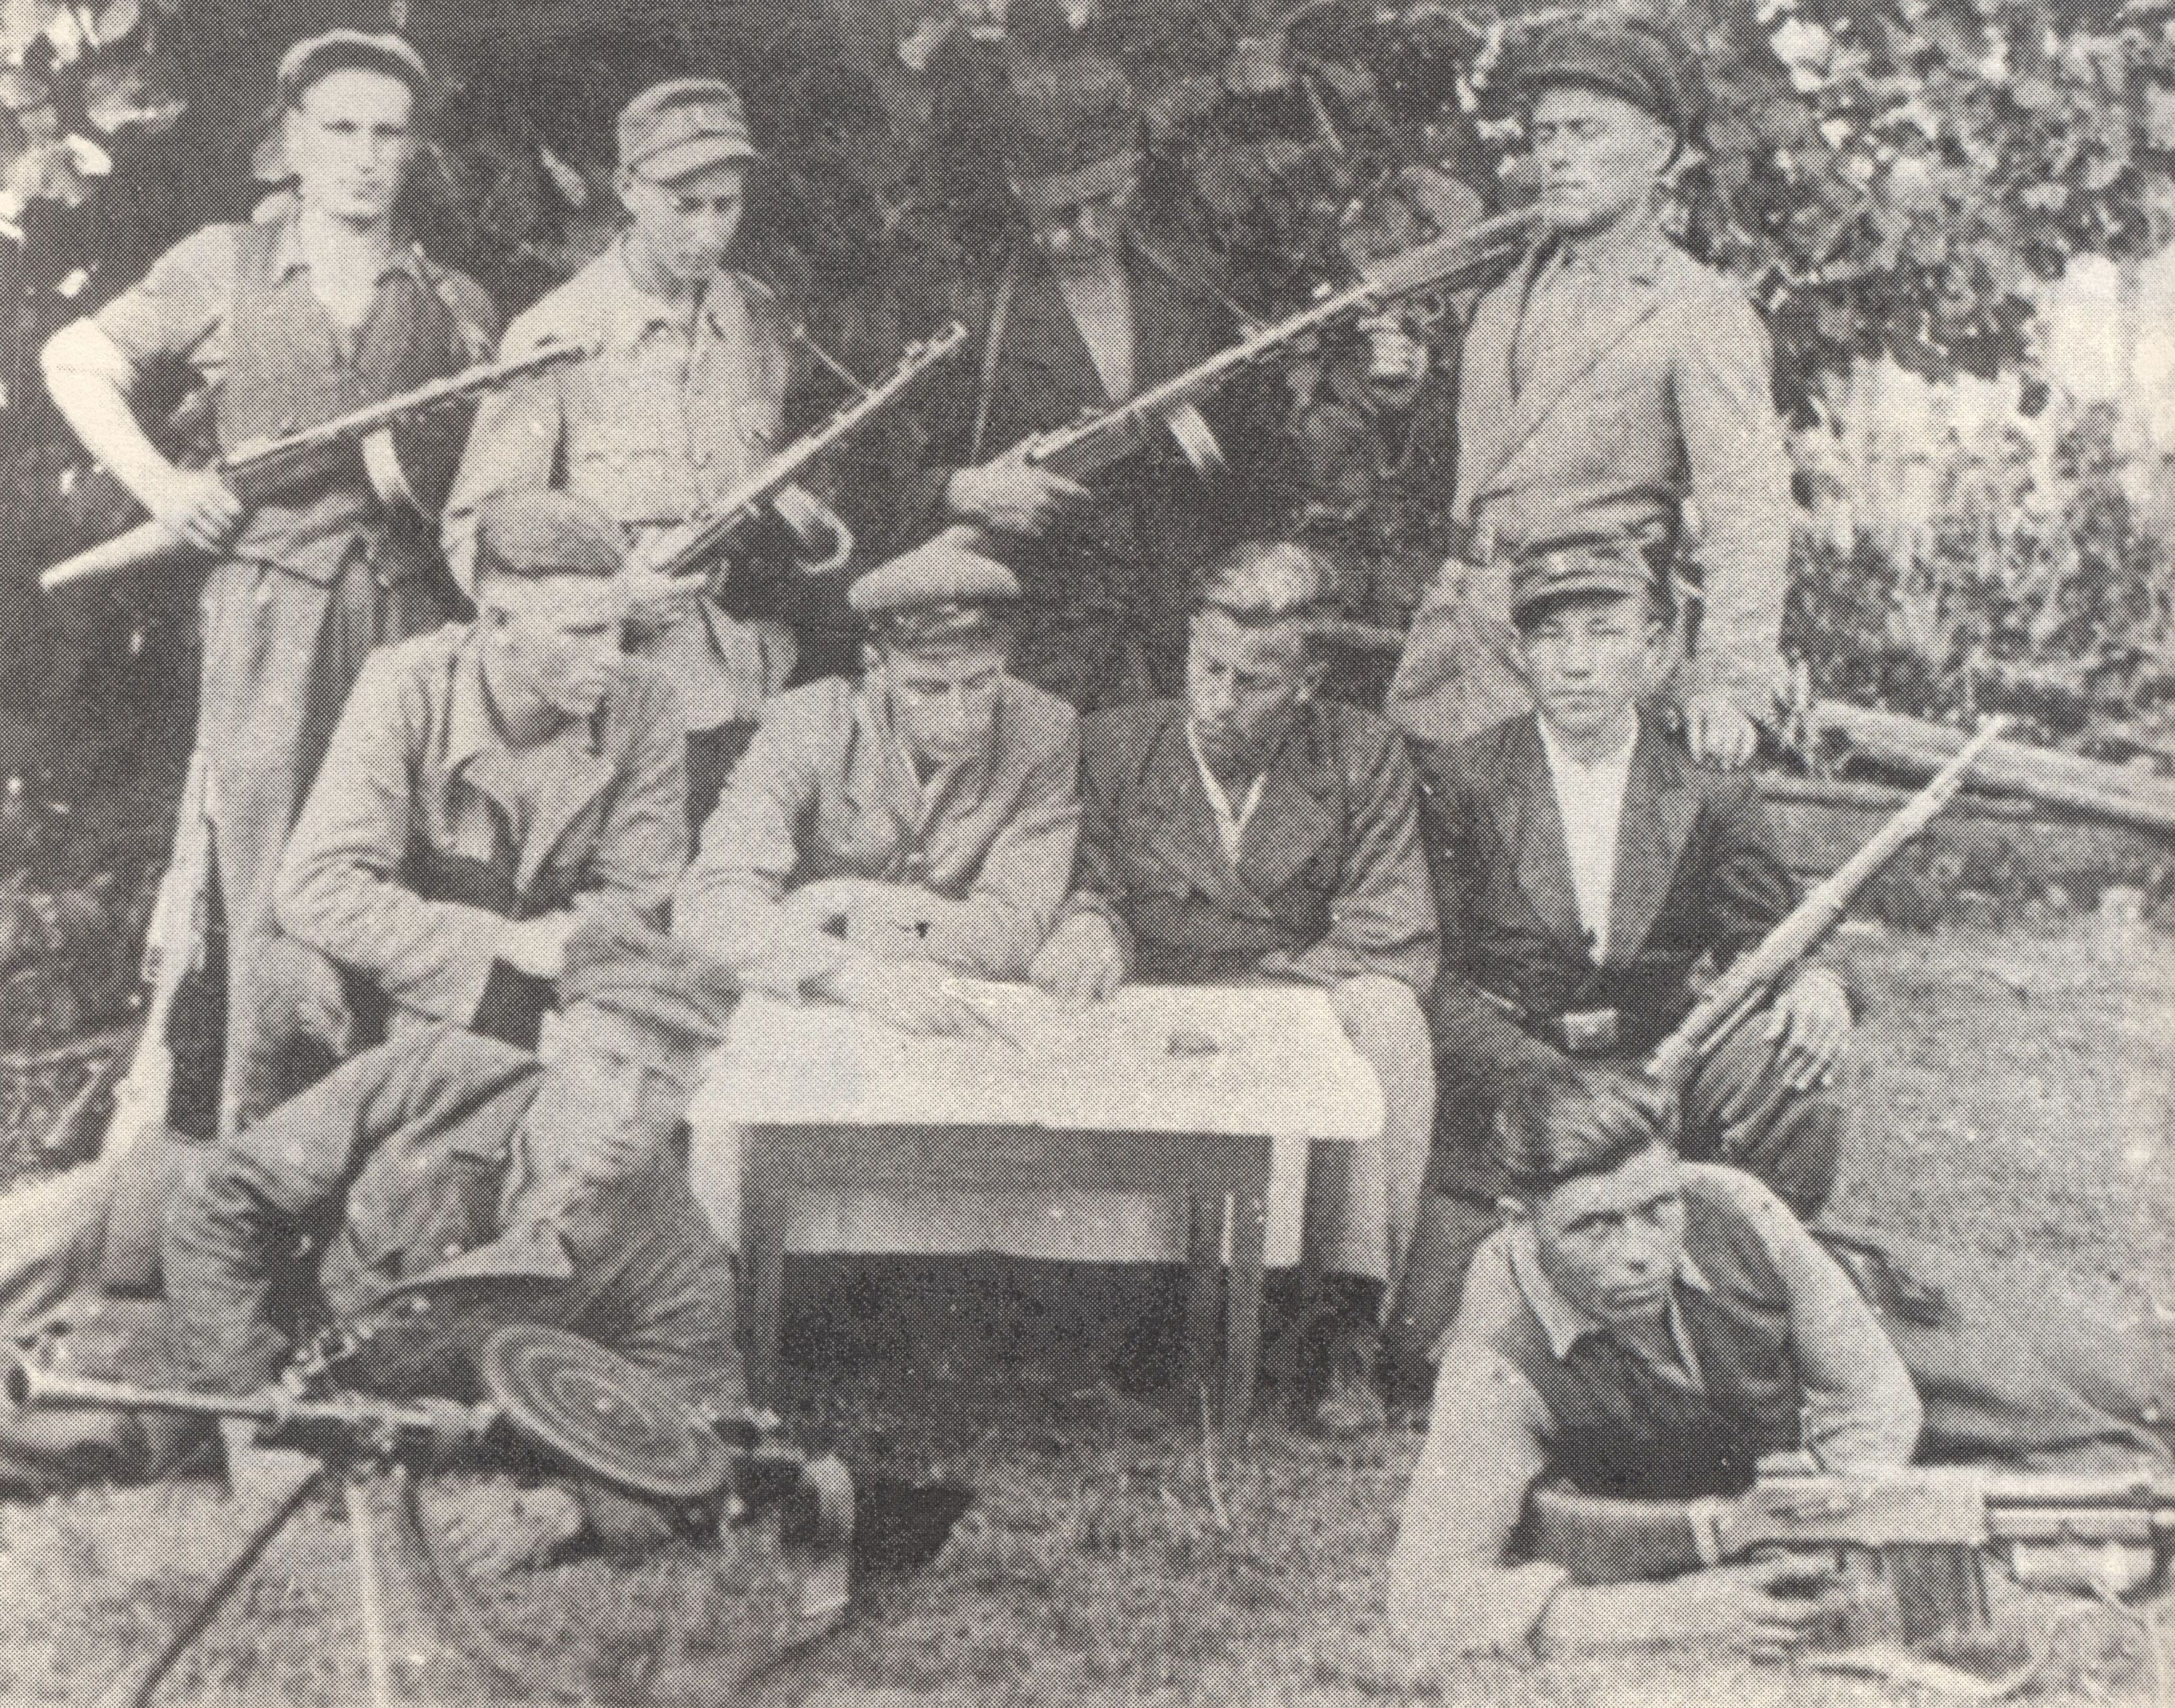 Szmajzner with the partisans